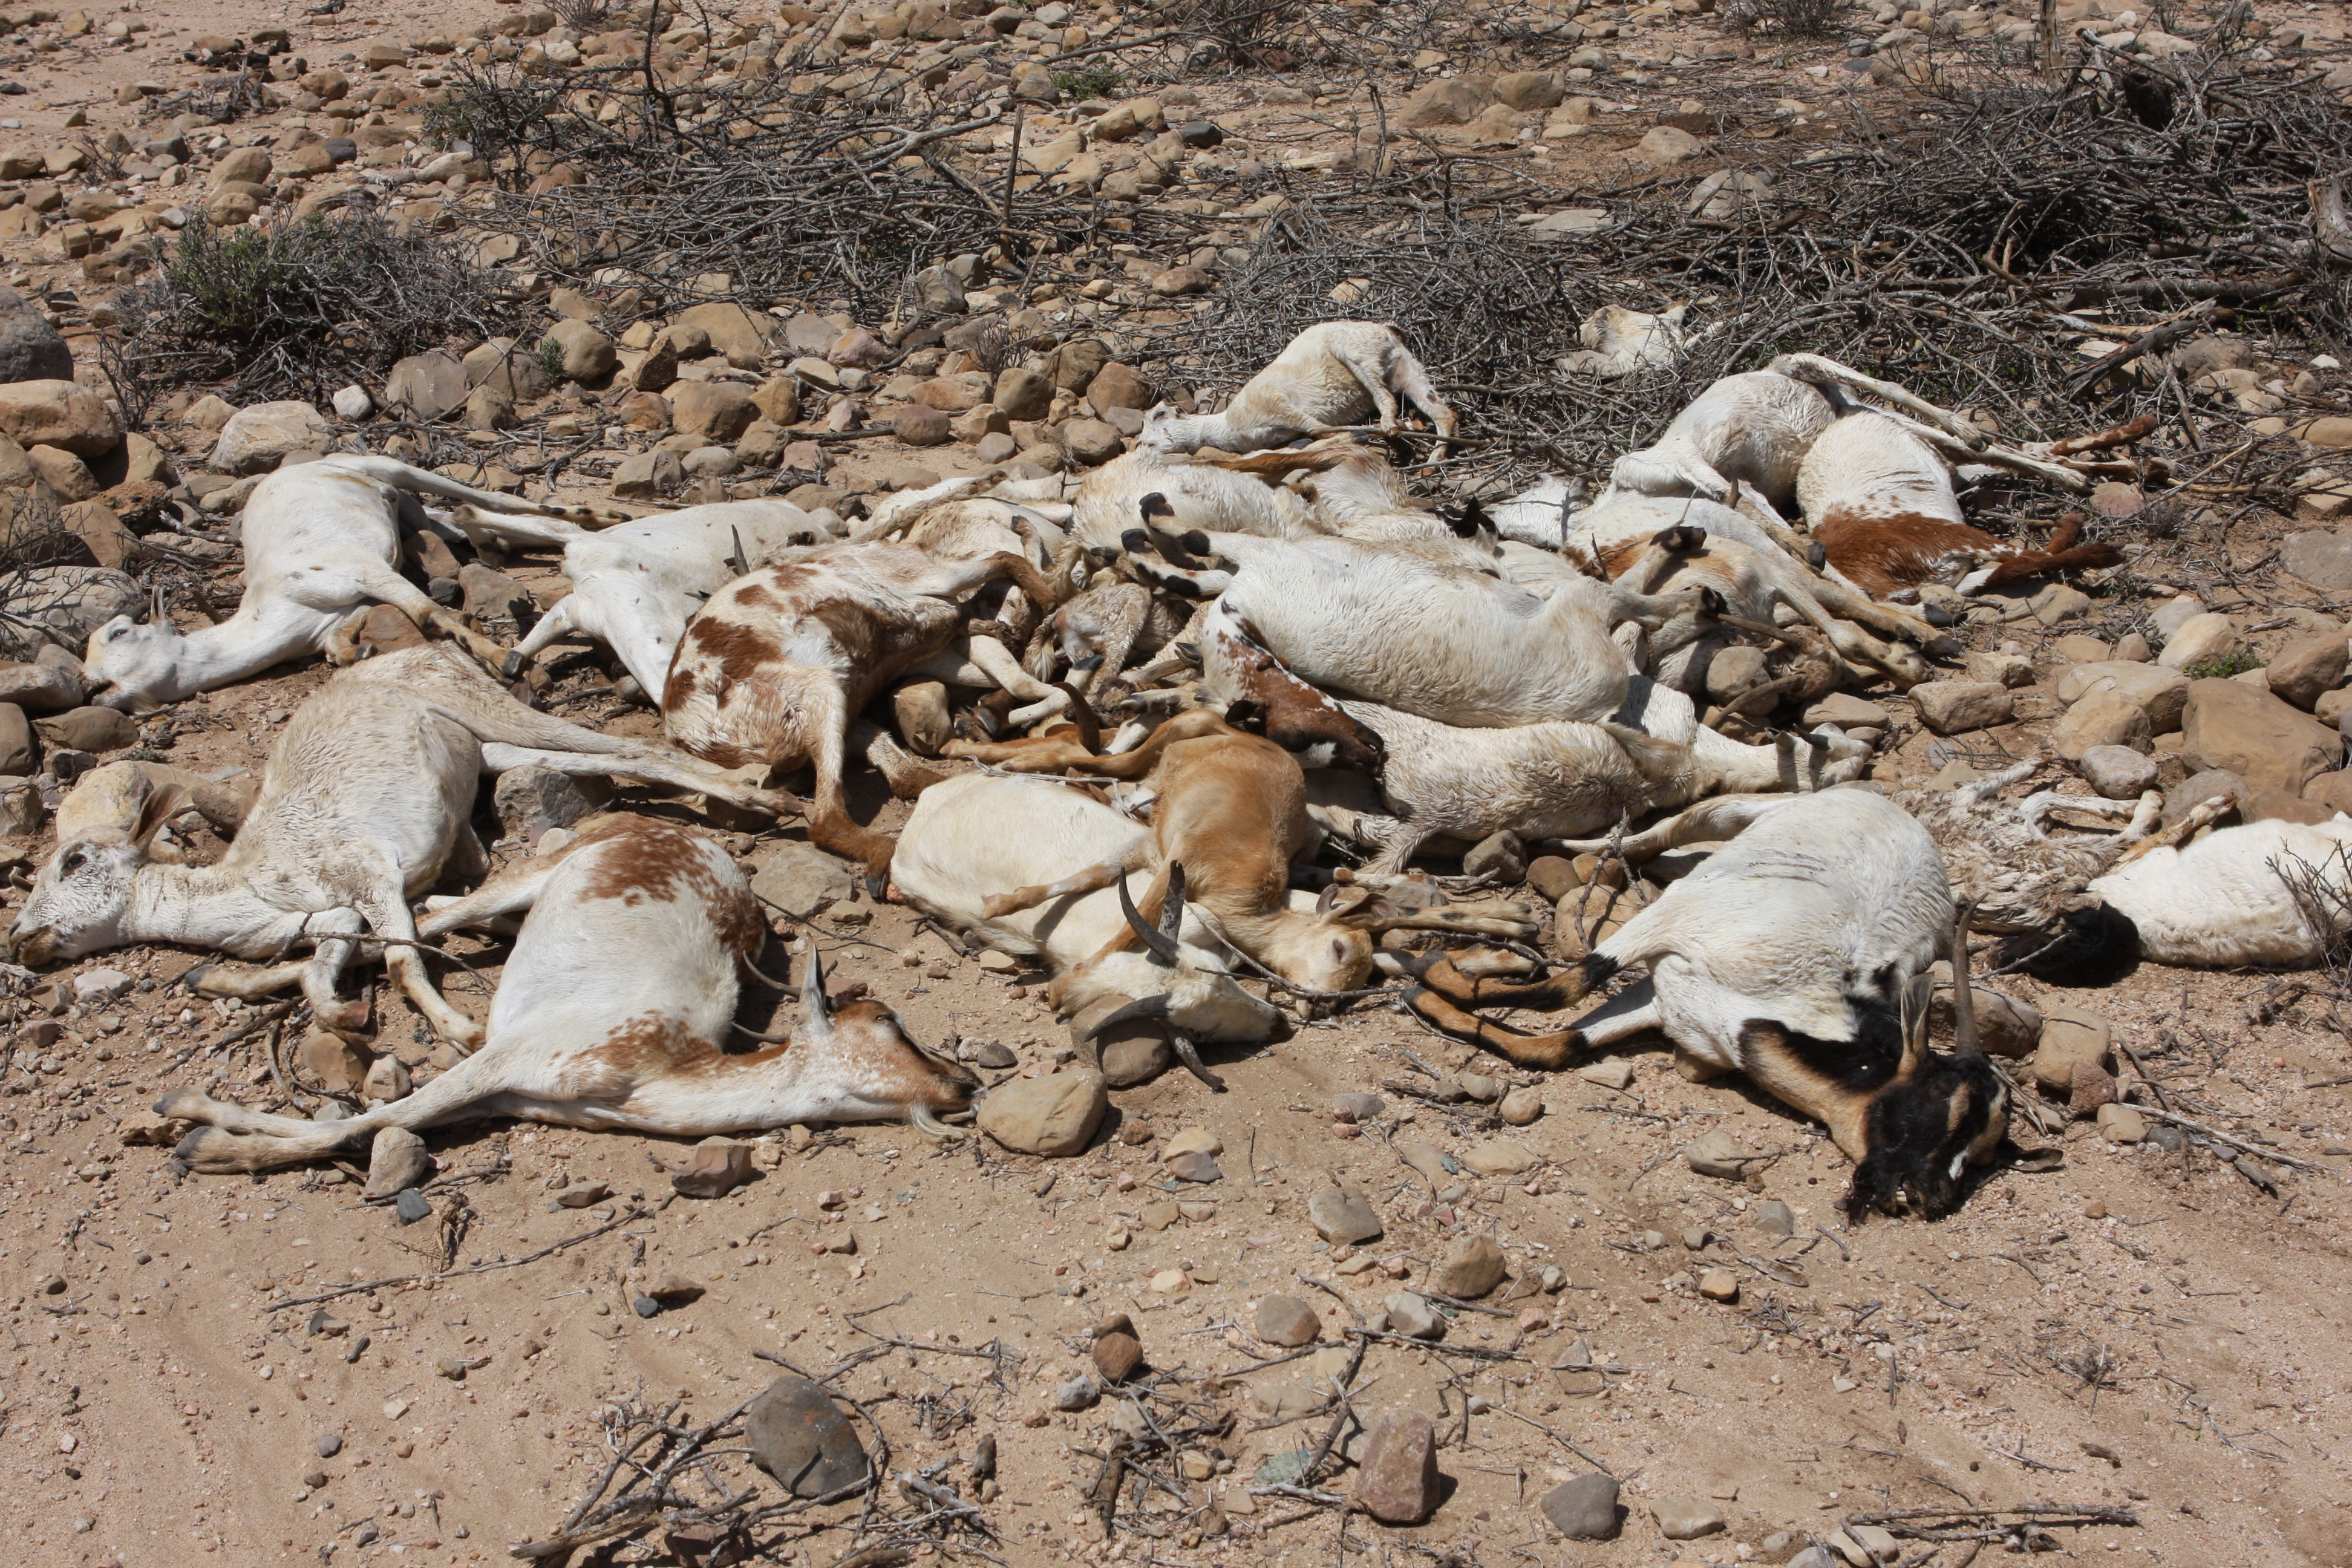 Goats succumb to drought and cold